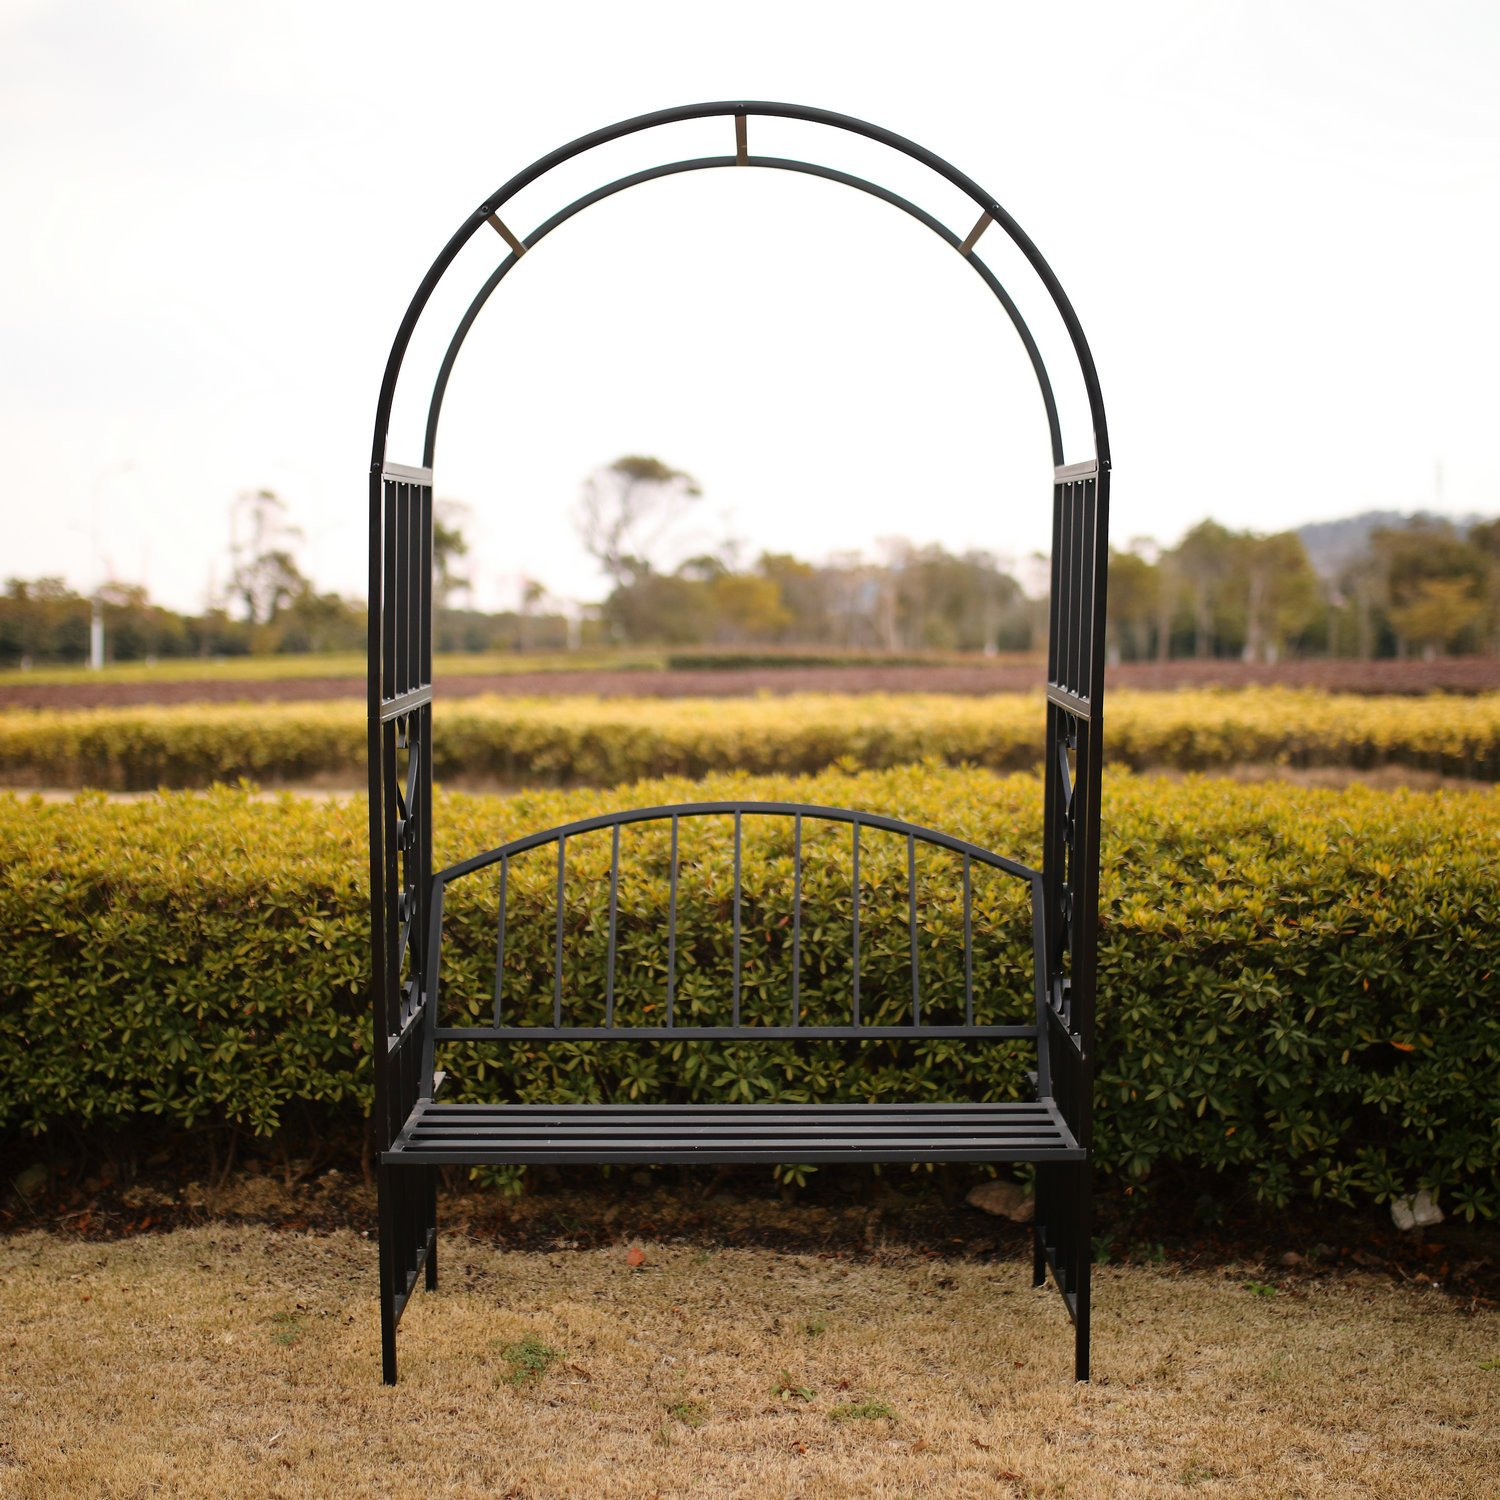 Amazon.com : Better Garden Steel Garden Arch with Seat for 2 People ...